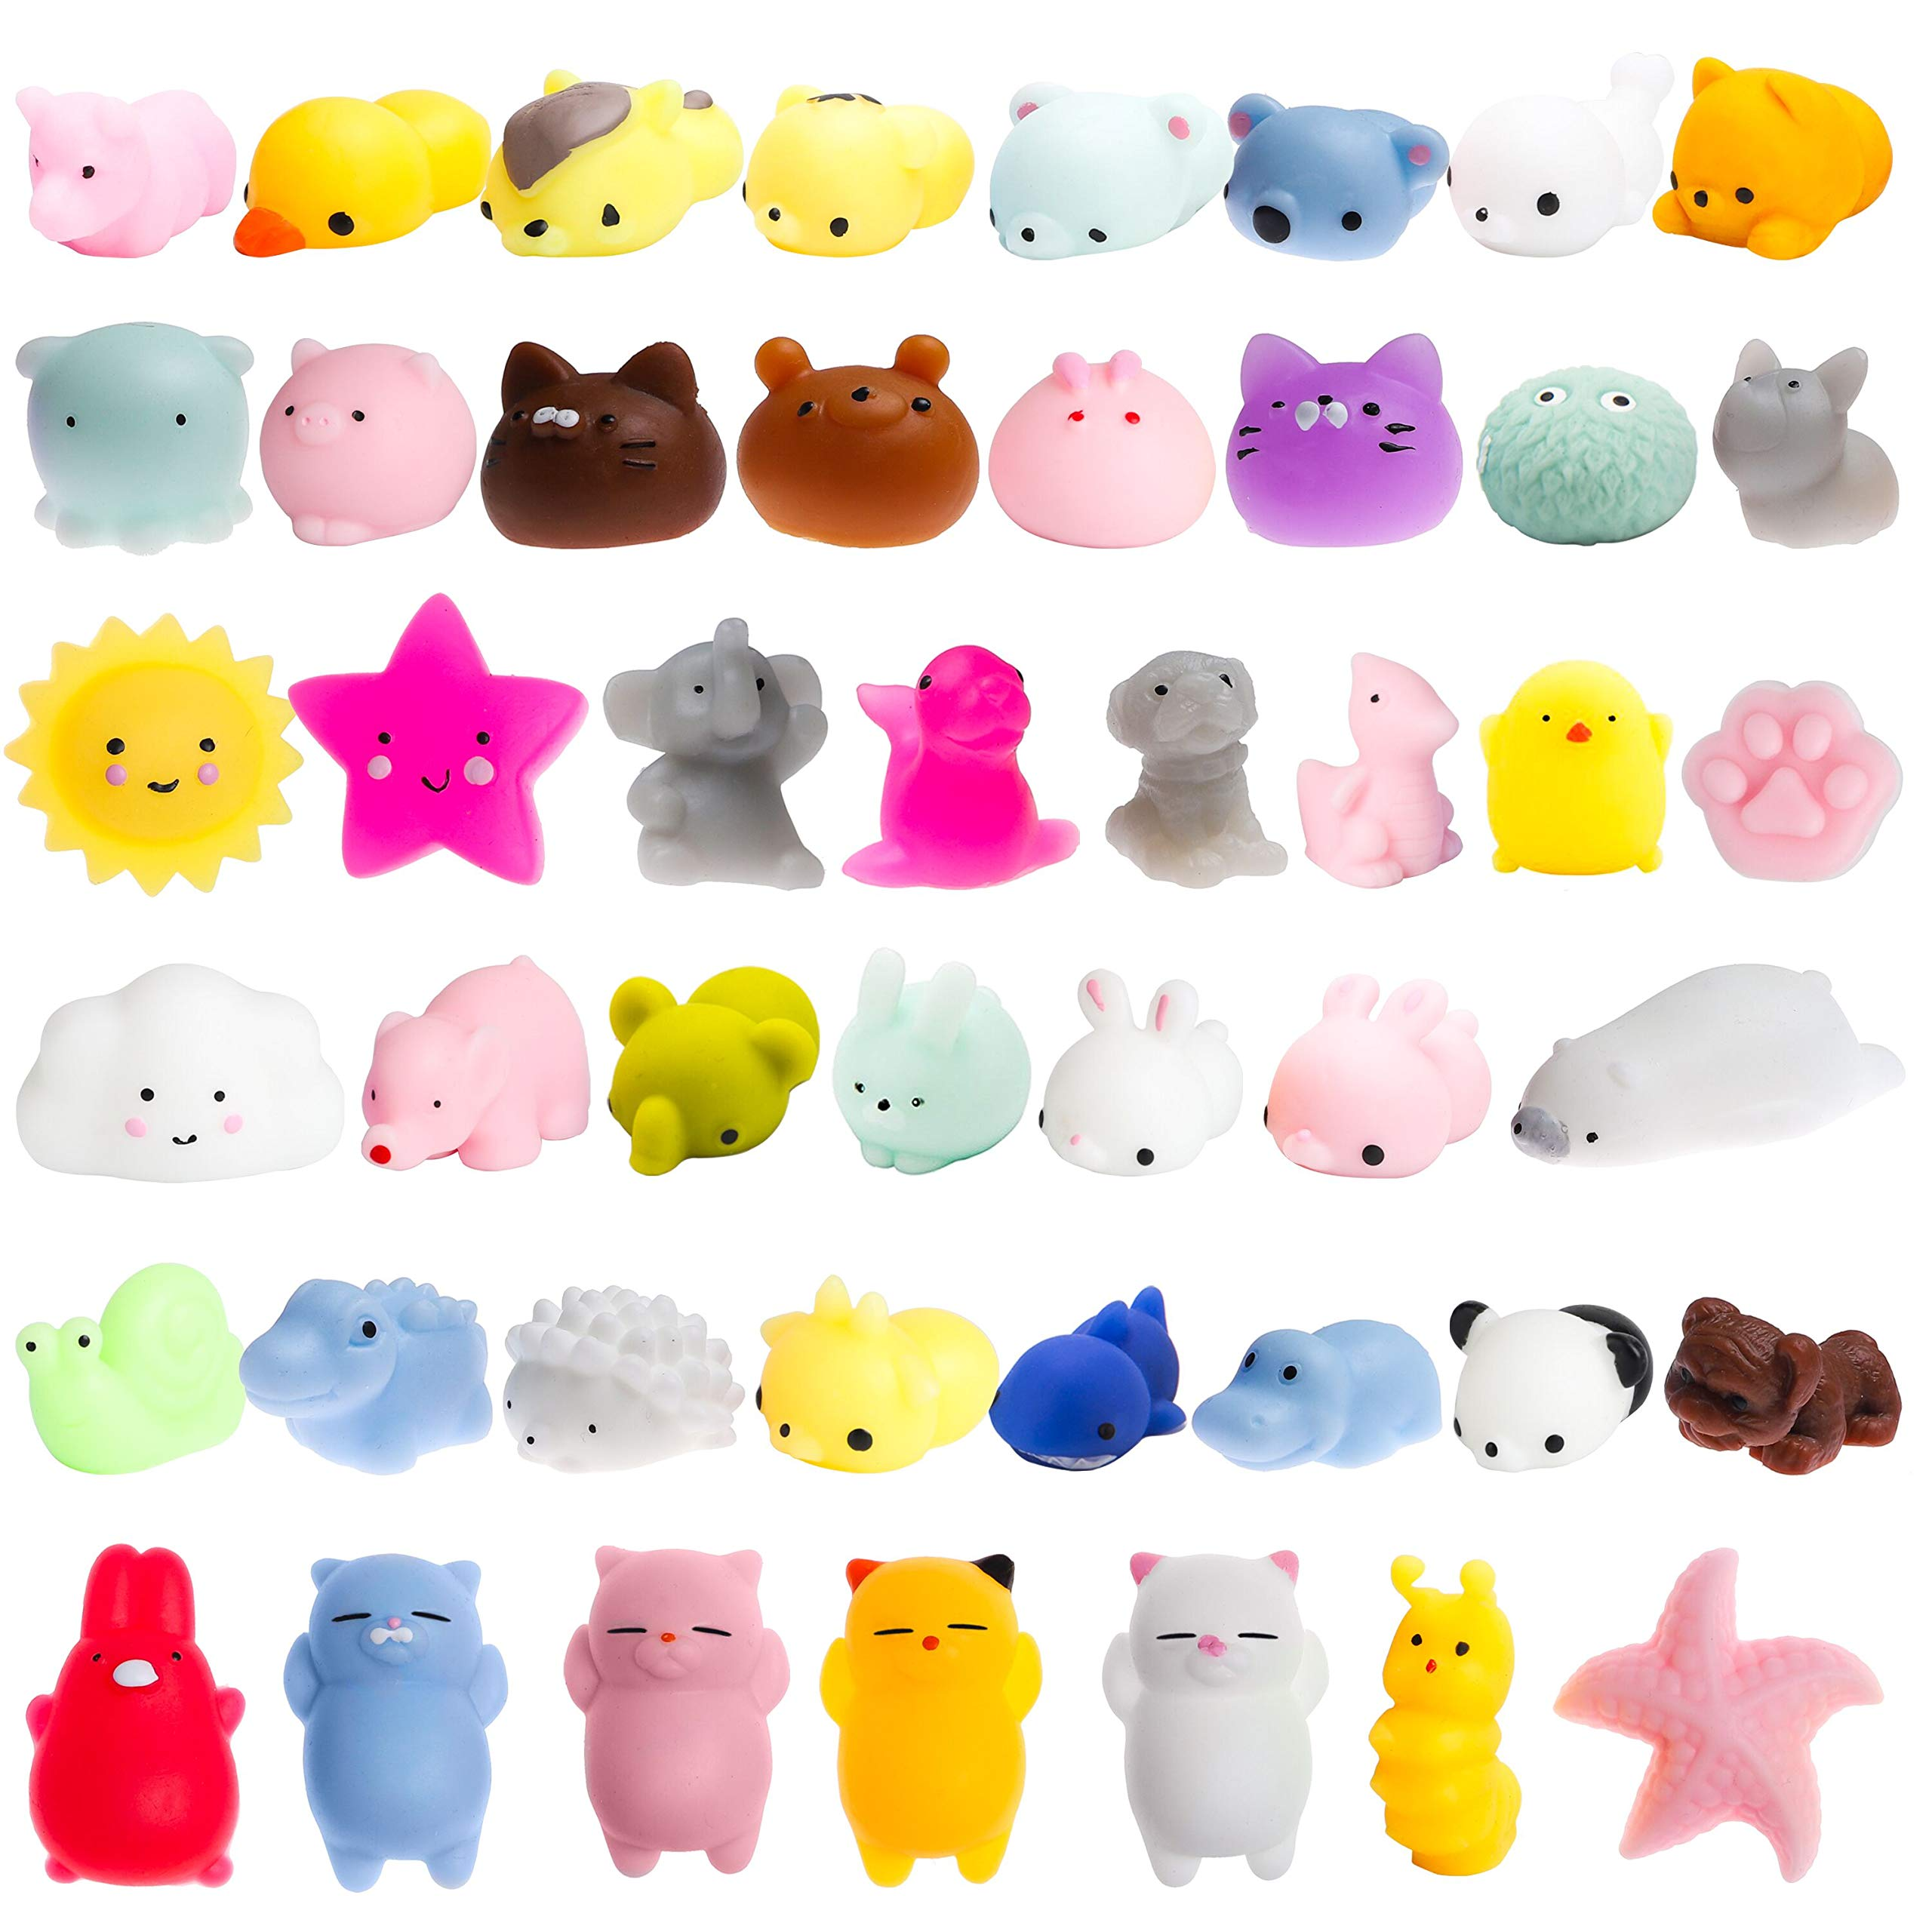 WATINC 40 Pcs Mochi Squishies Toy, Squeeze Cat Squishies for Mochi Party Favors, Birthday Gifts for Boys & Girls, Mini Cute Animal Squishies Toys, Kawaii Stress Relief Toys, Goodie Bags Egg Fillers by WATINC